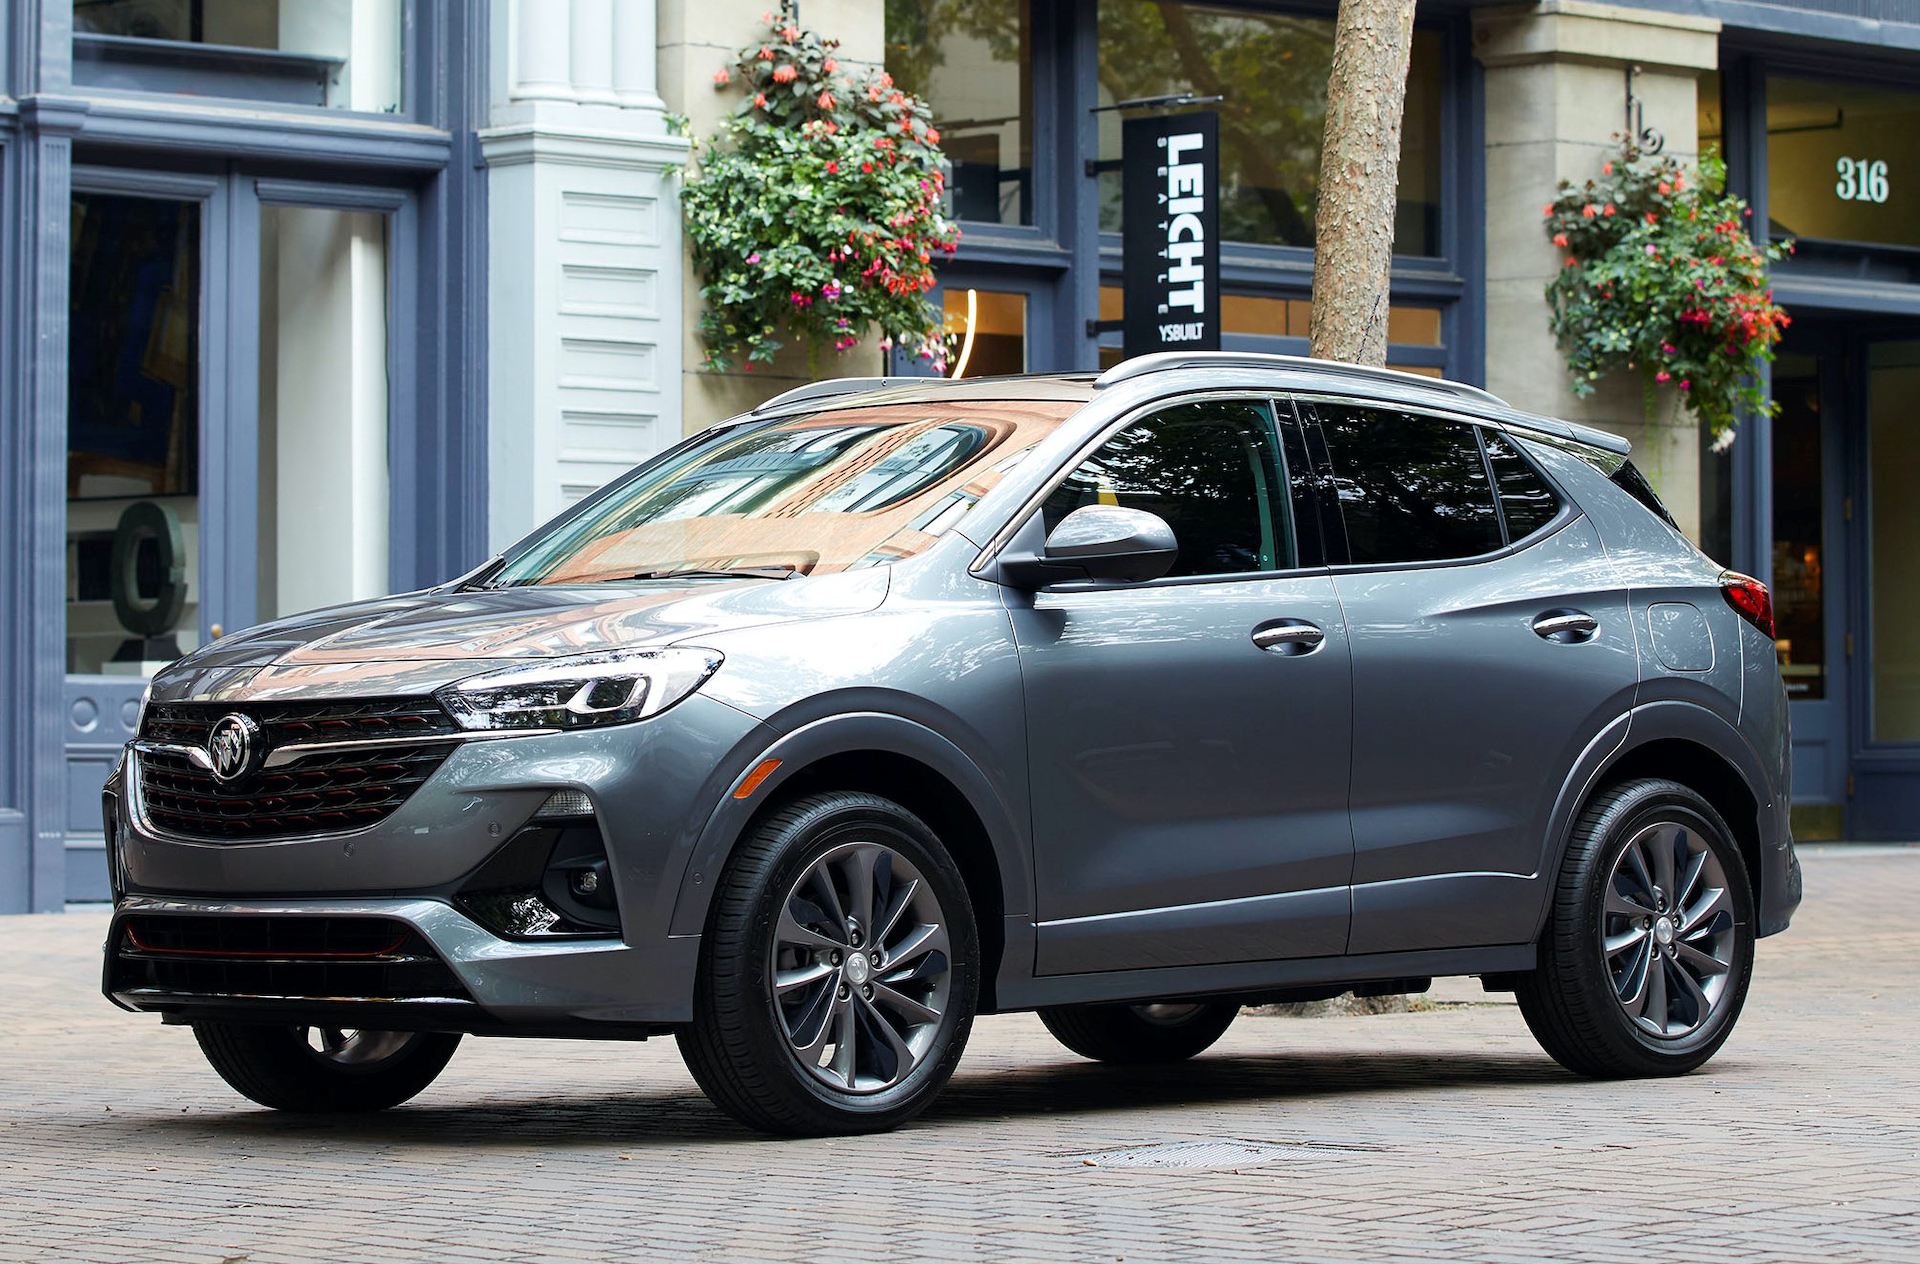 2021 Buick Encore Review, Ratings, Specs, Prices, And Photos New 2021 Buick Encore Used, Updates, Wheels